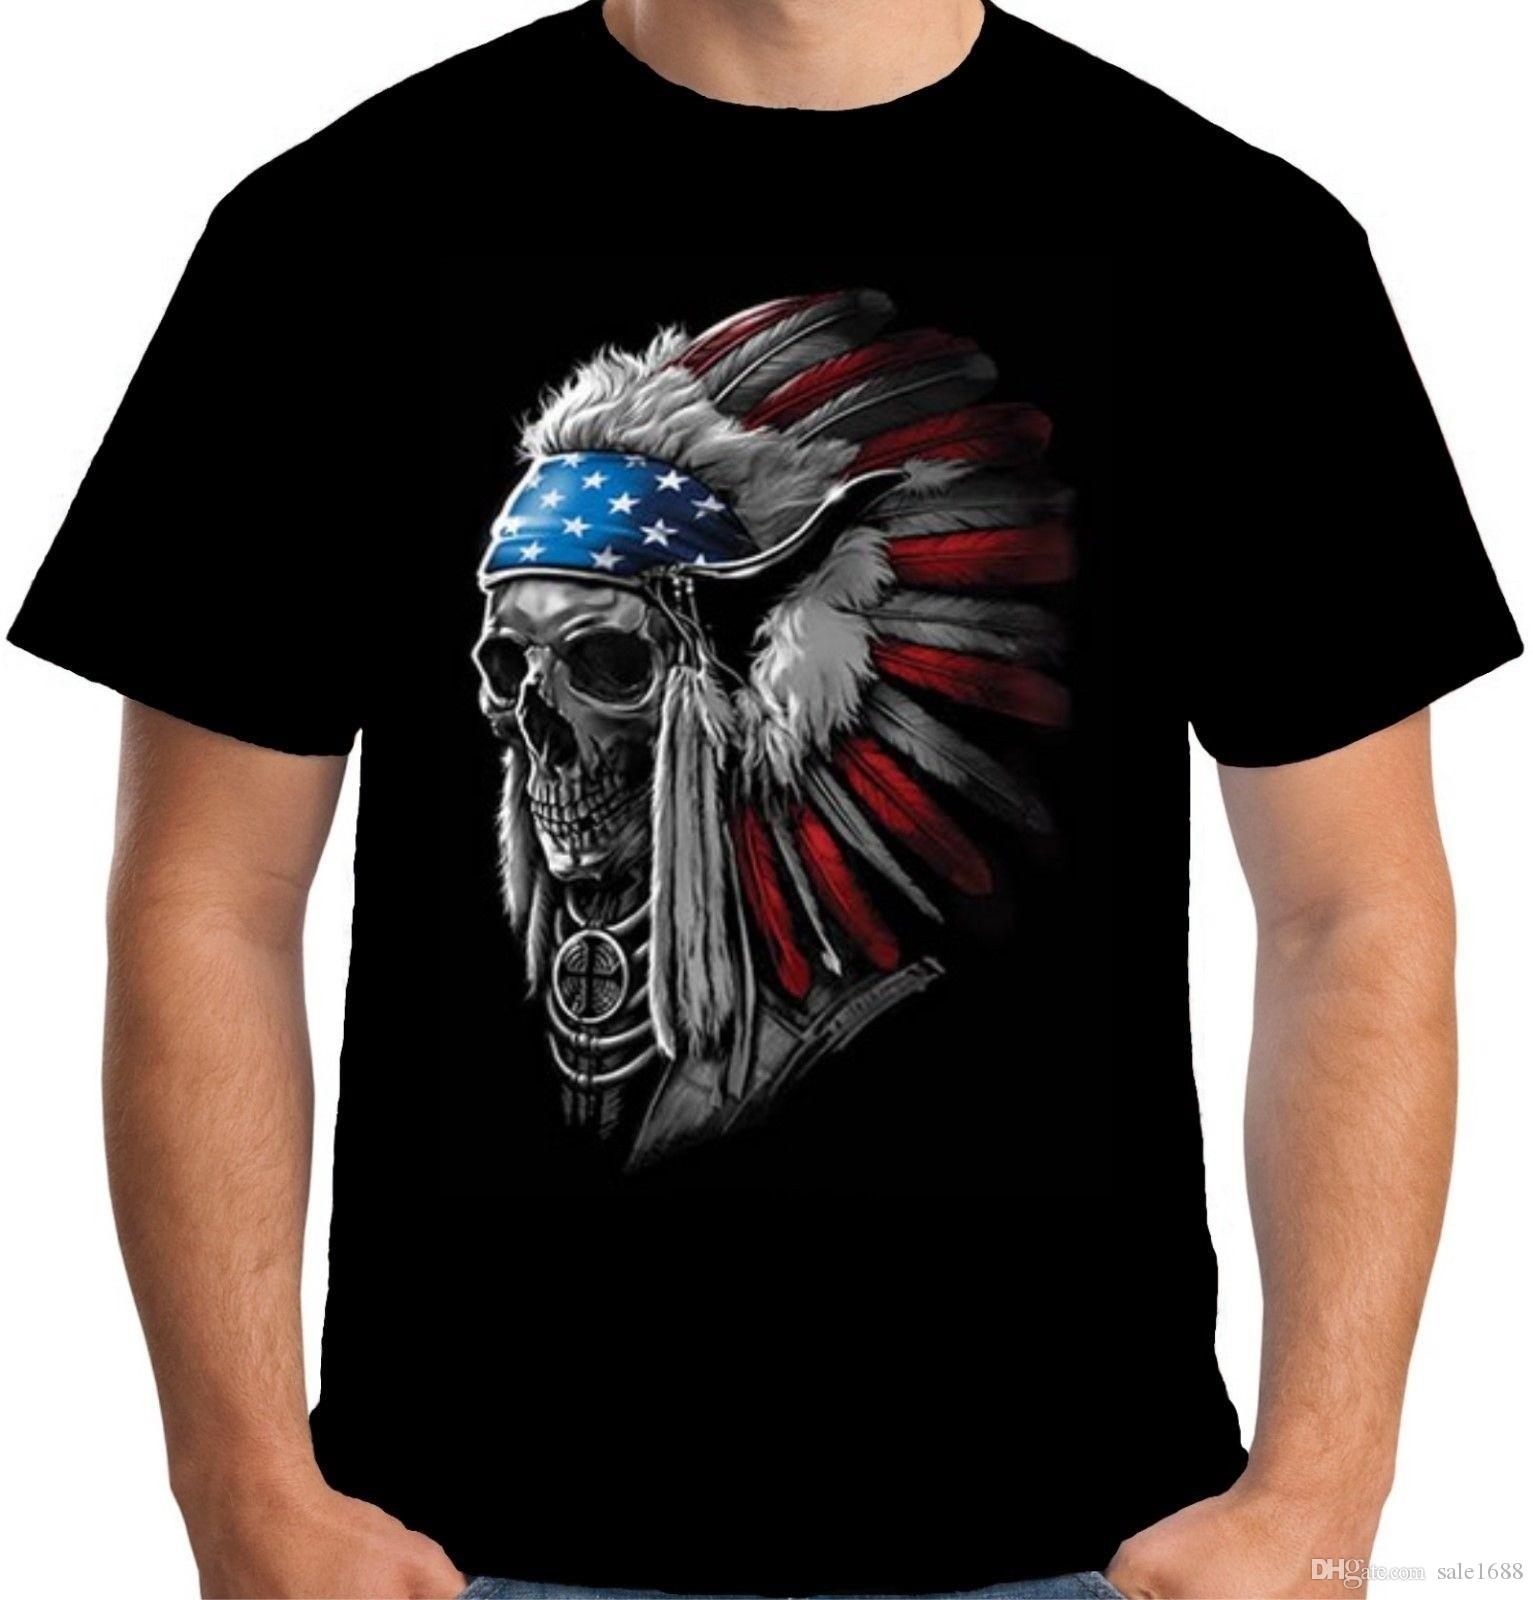 4a1fad25 Men T Shirt S Native American Indian Chief Skull T Shirt Funny T Shirt  Novelty Tshirt Women T Shirts For T Shirt For From Sale1688, $25.02|  DHgate.Com